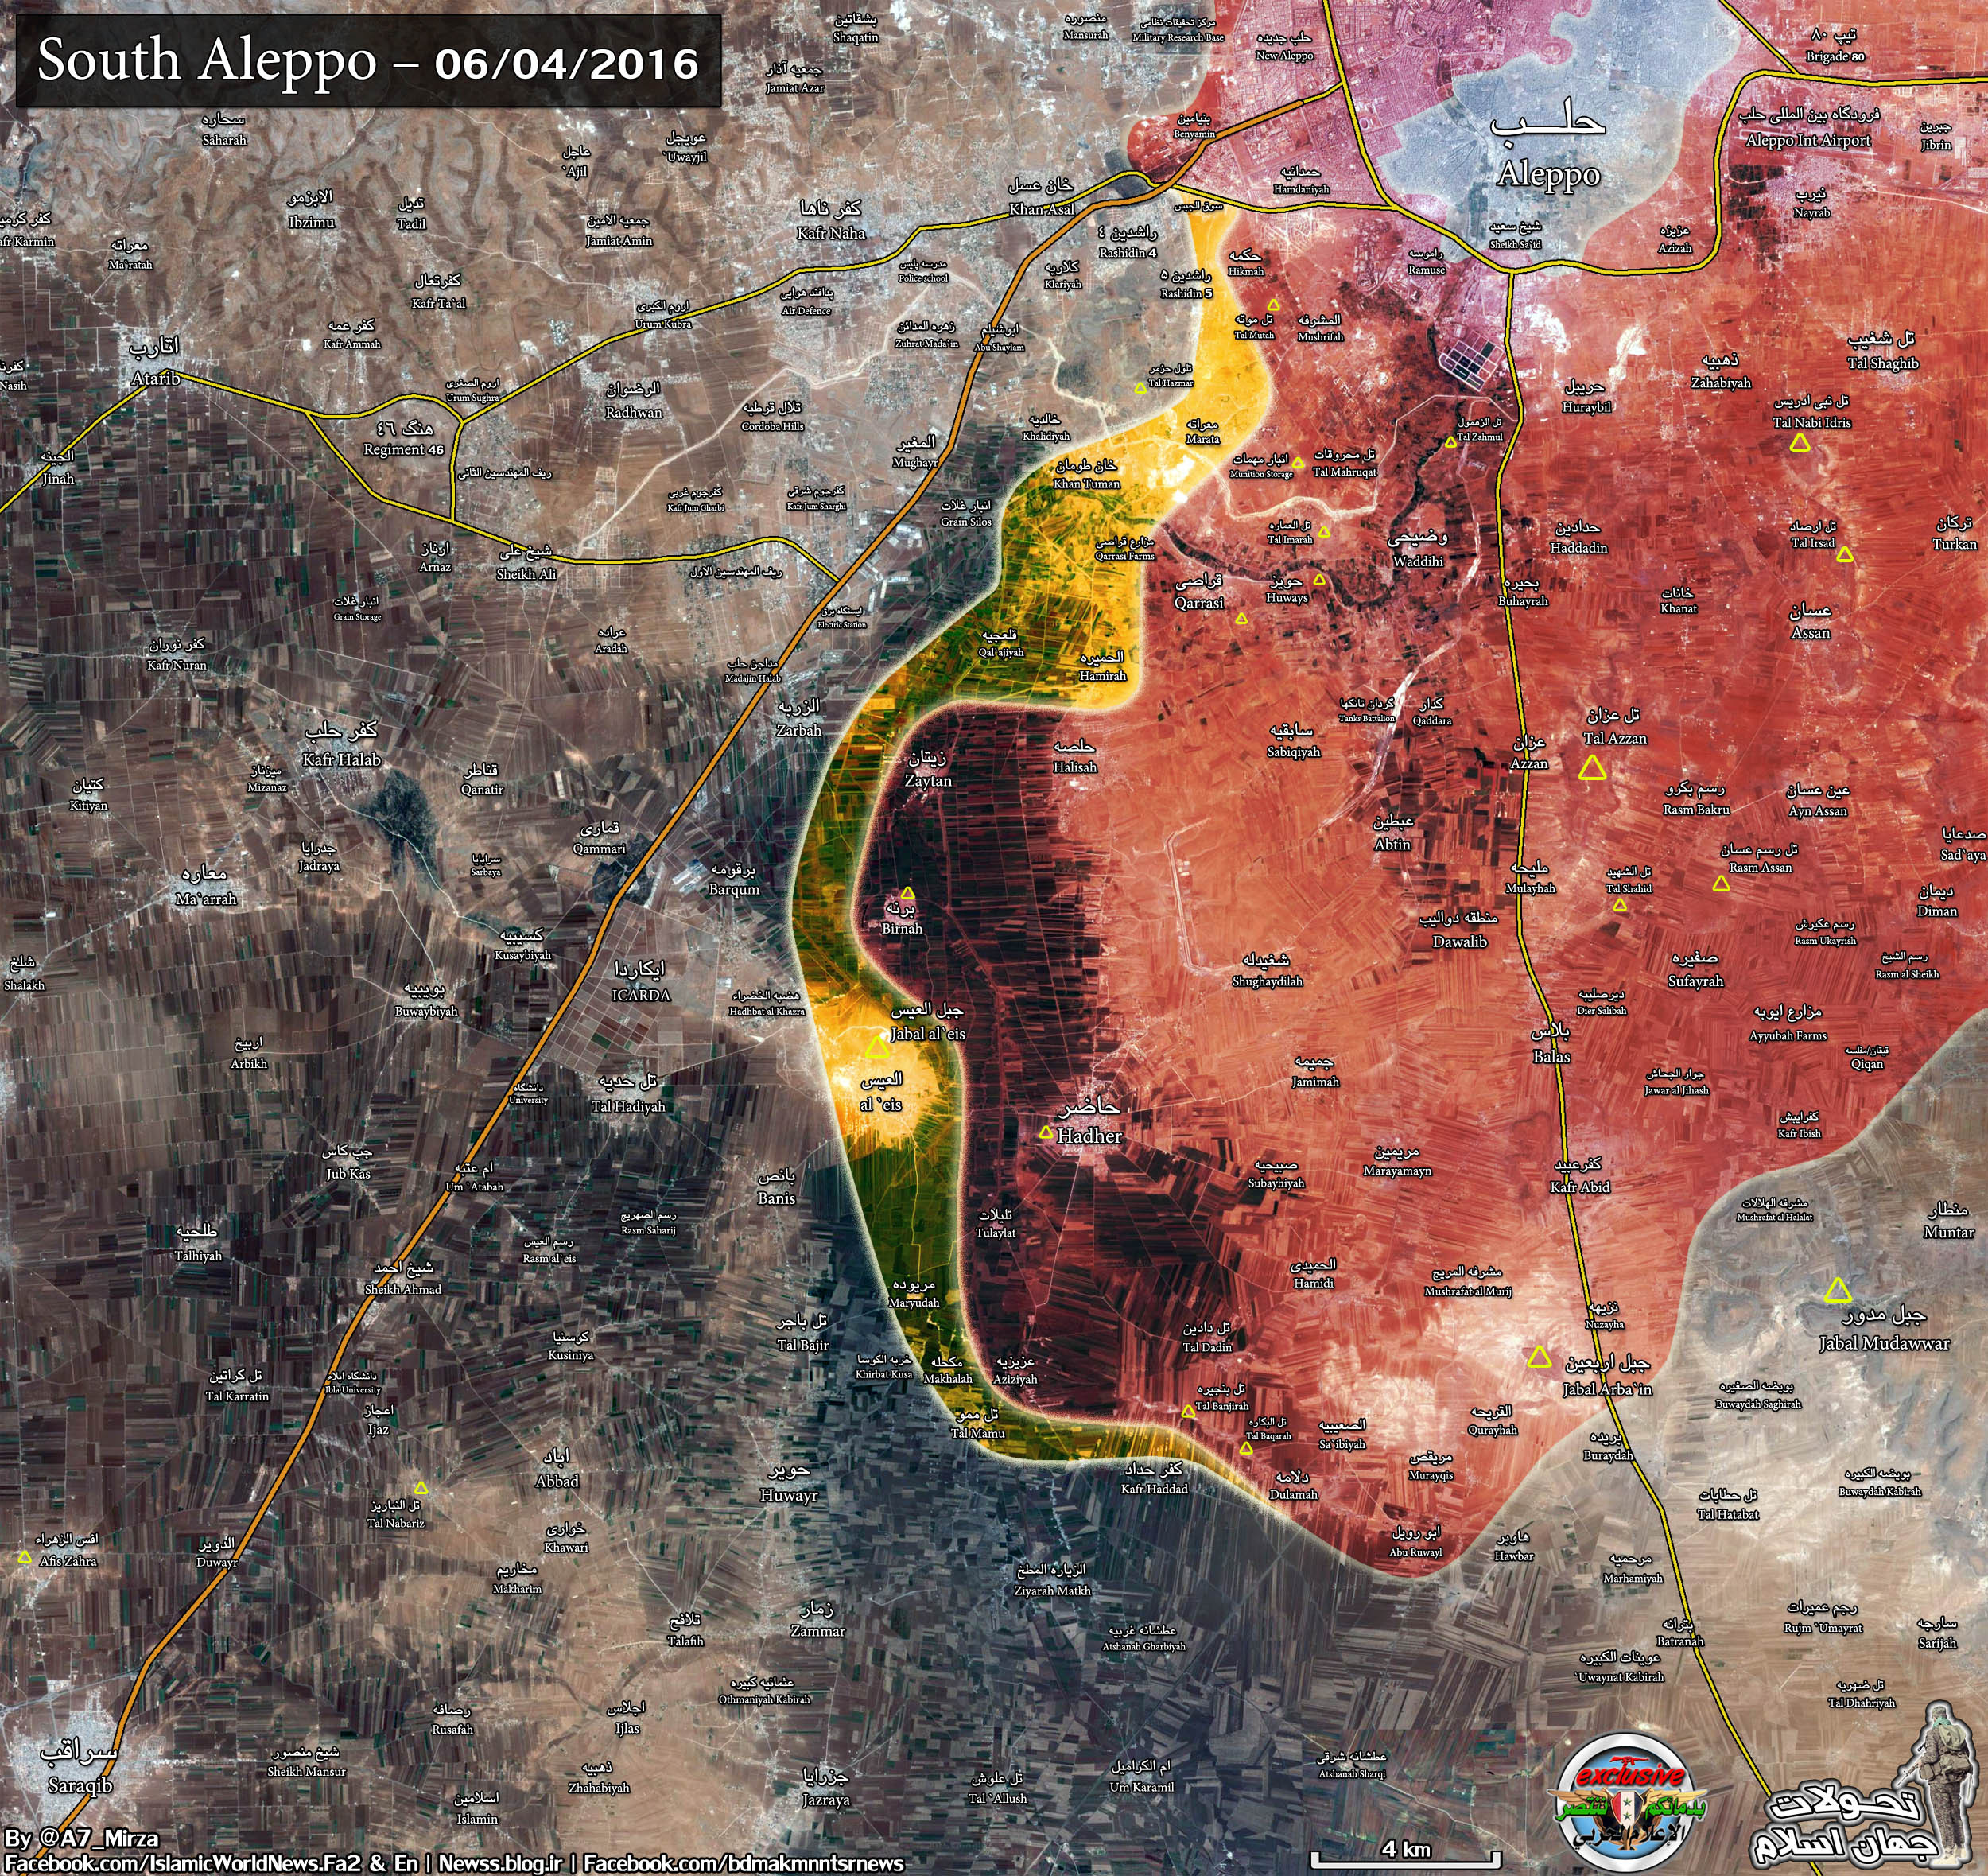 Military SItuation in South Aleppo, Syria on June 4